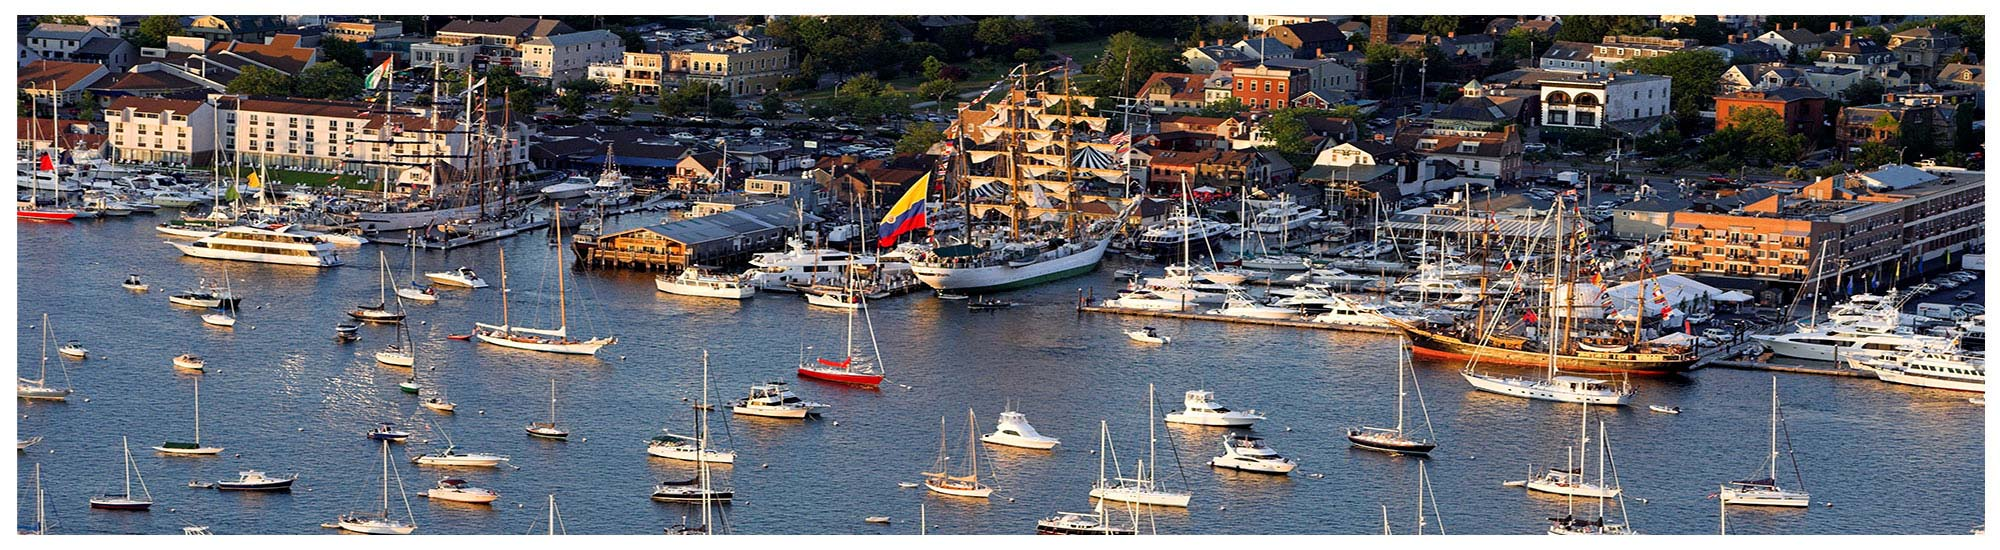 Newport RI boating and sailing information including harbor cruises, dockage and sailboat charters